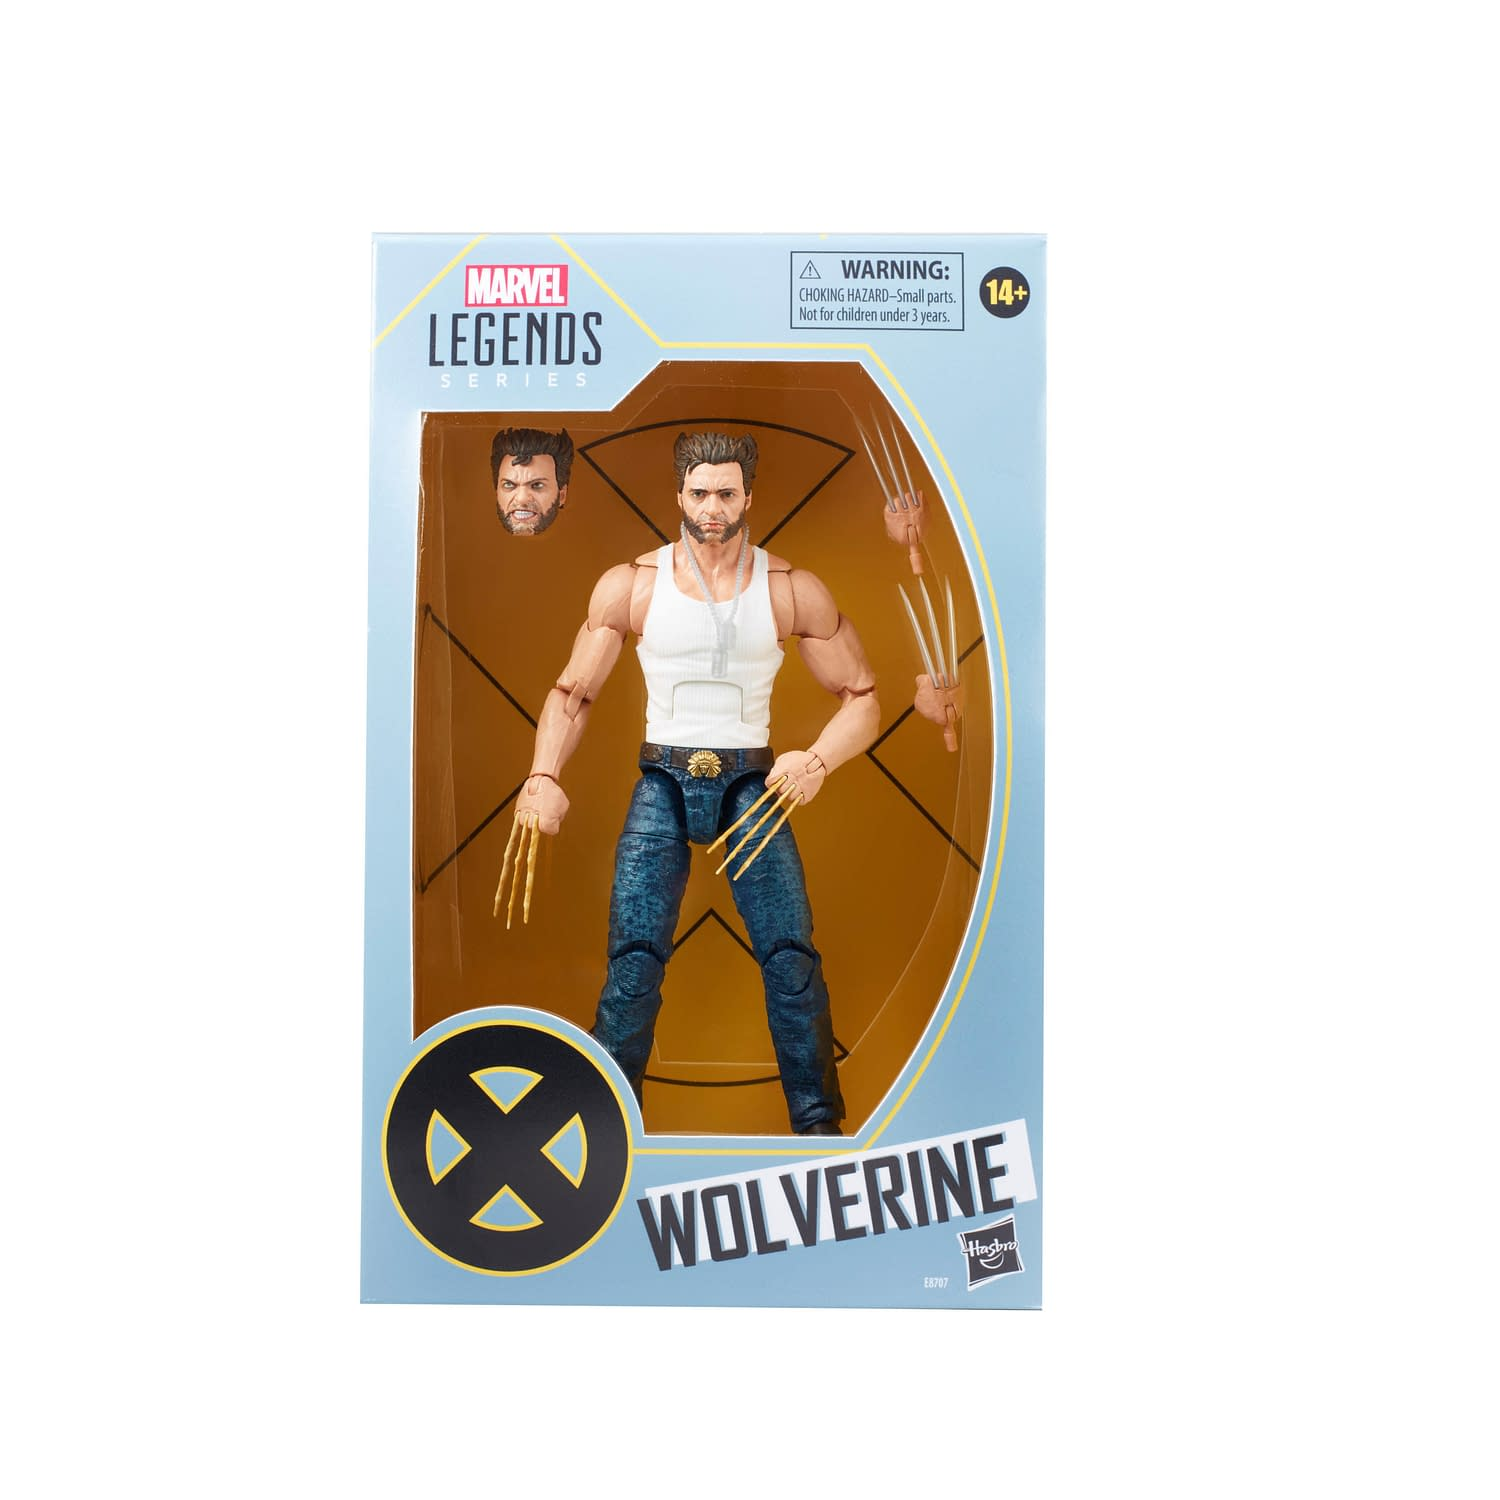 The X-Men Movies Come to Life with New Marvel Legends Wave